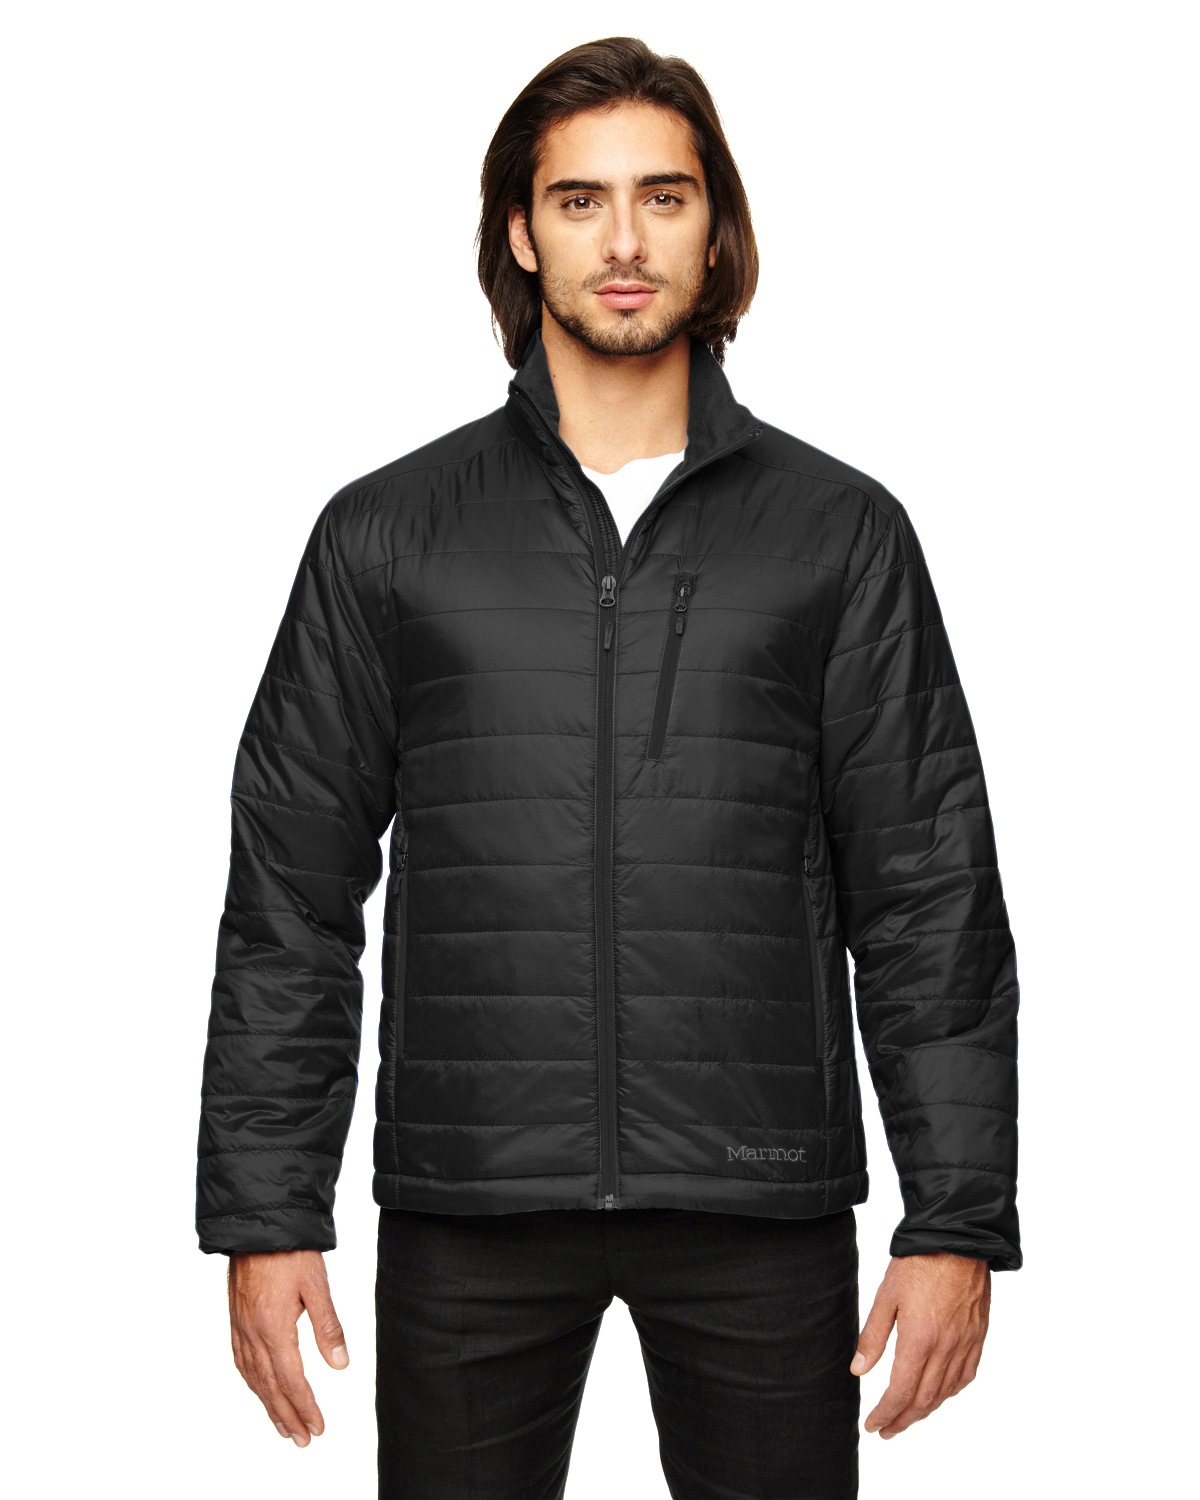 Marmot - 98030, Men's Calen Jacket - Logo Masters International